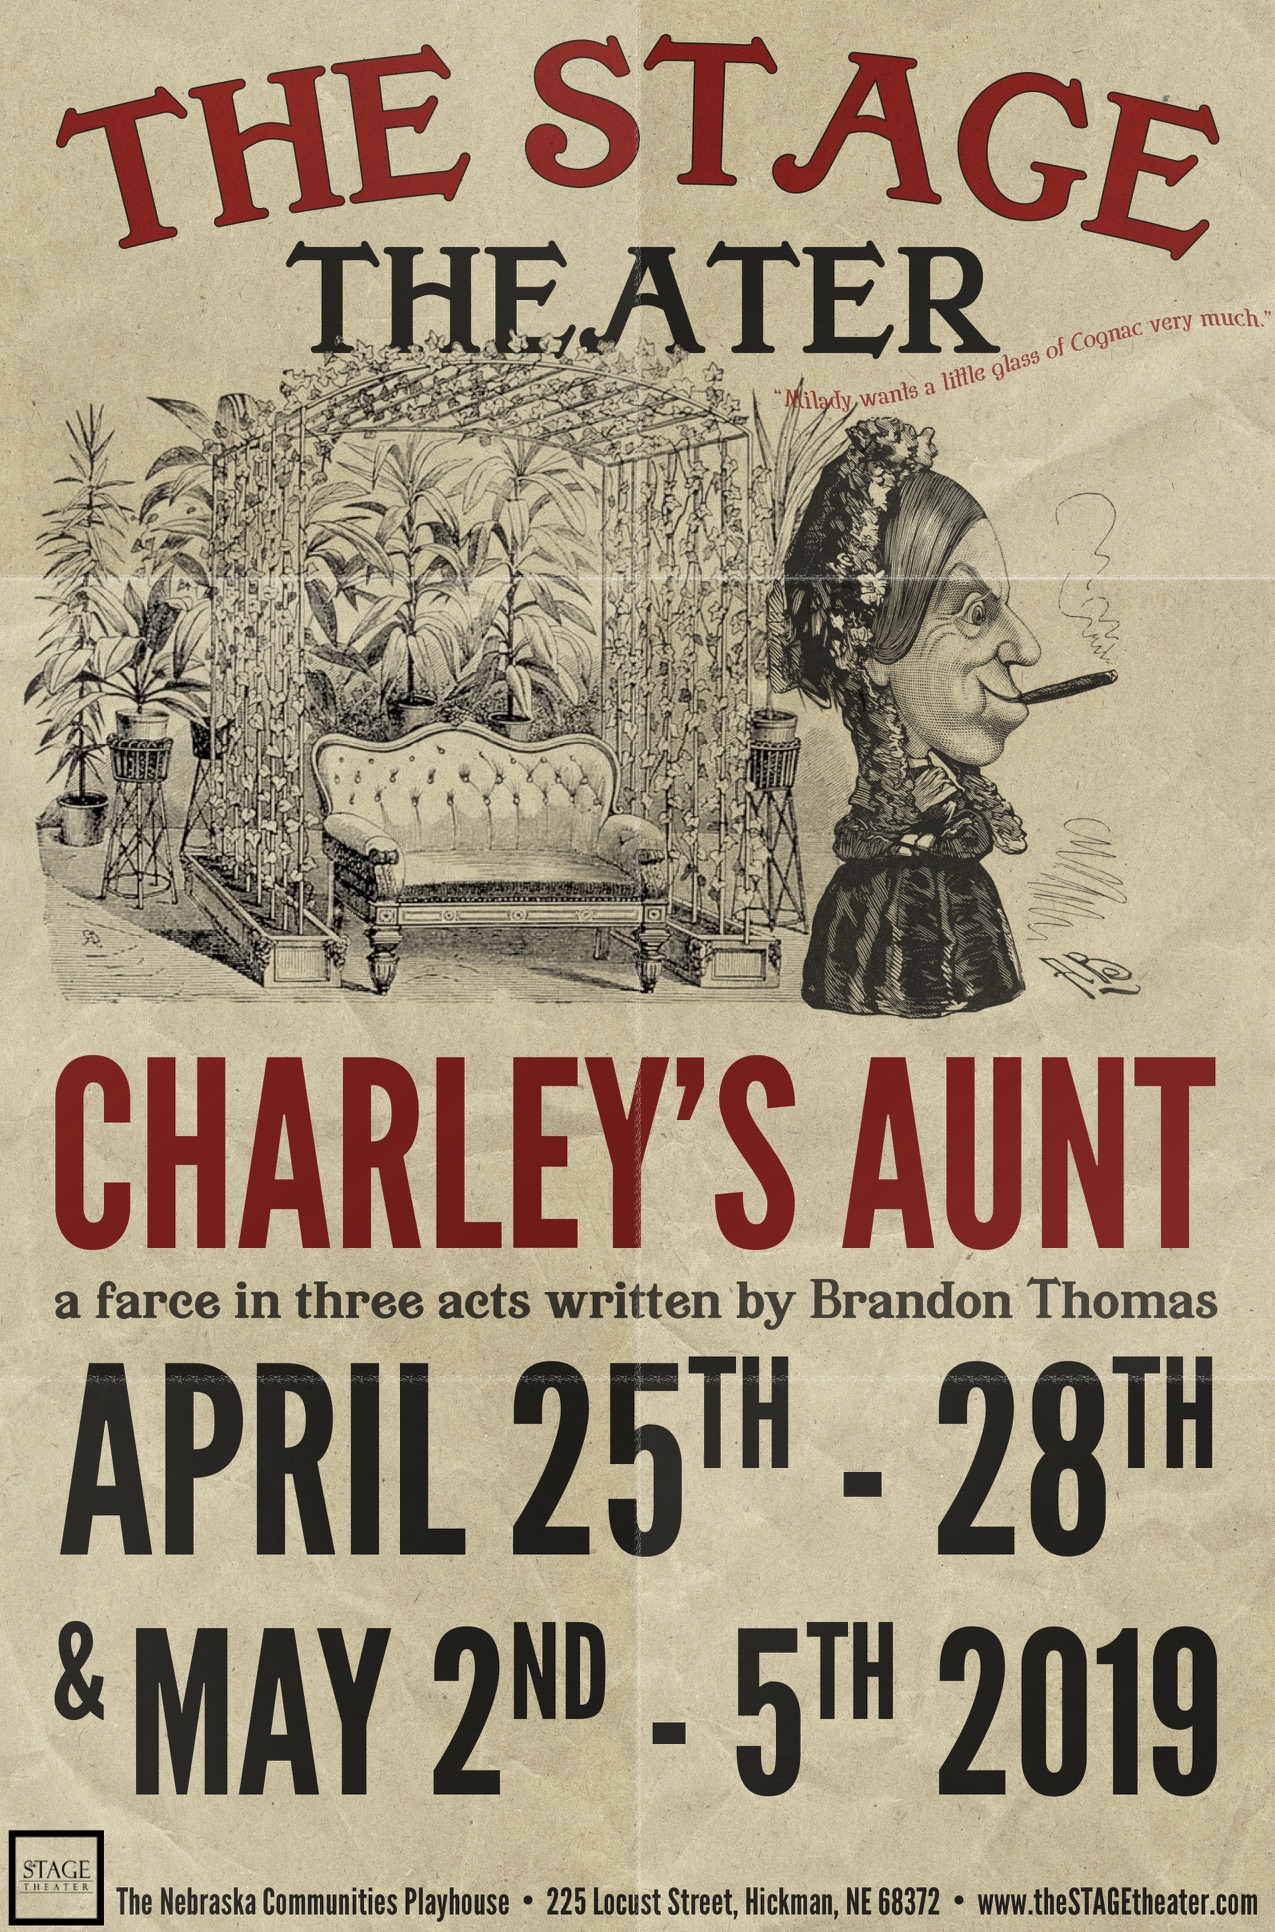 Charley's Aunt PRESS